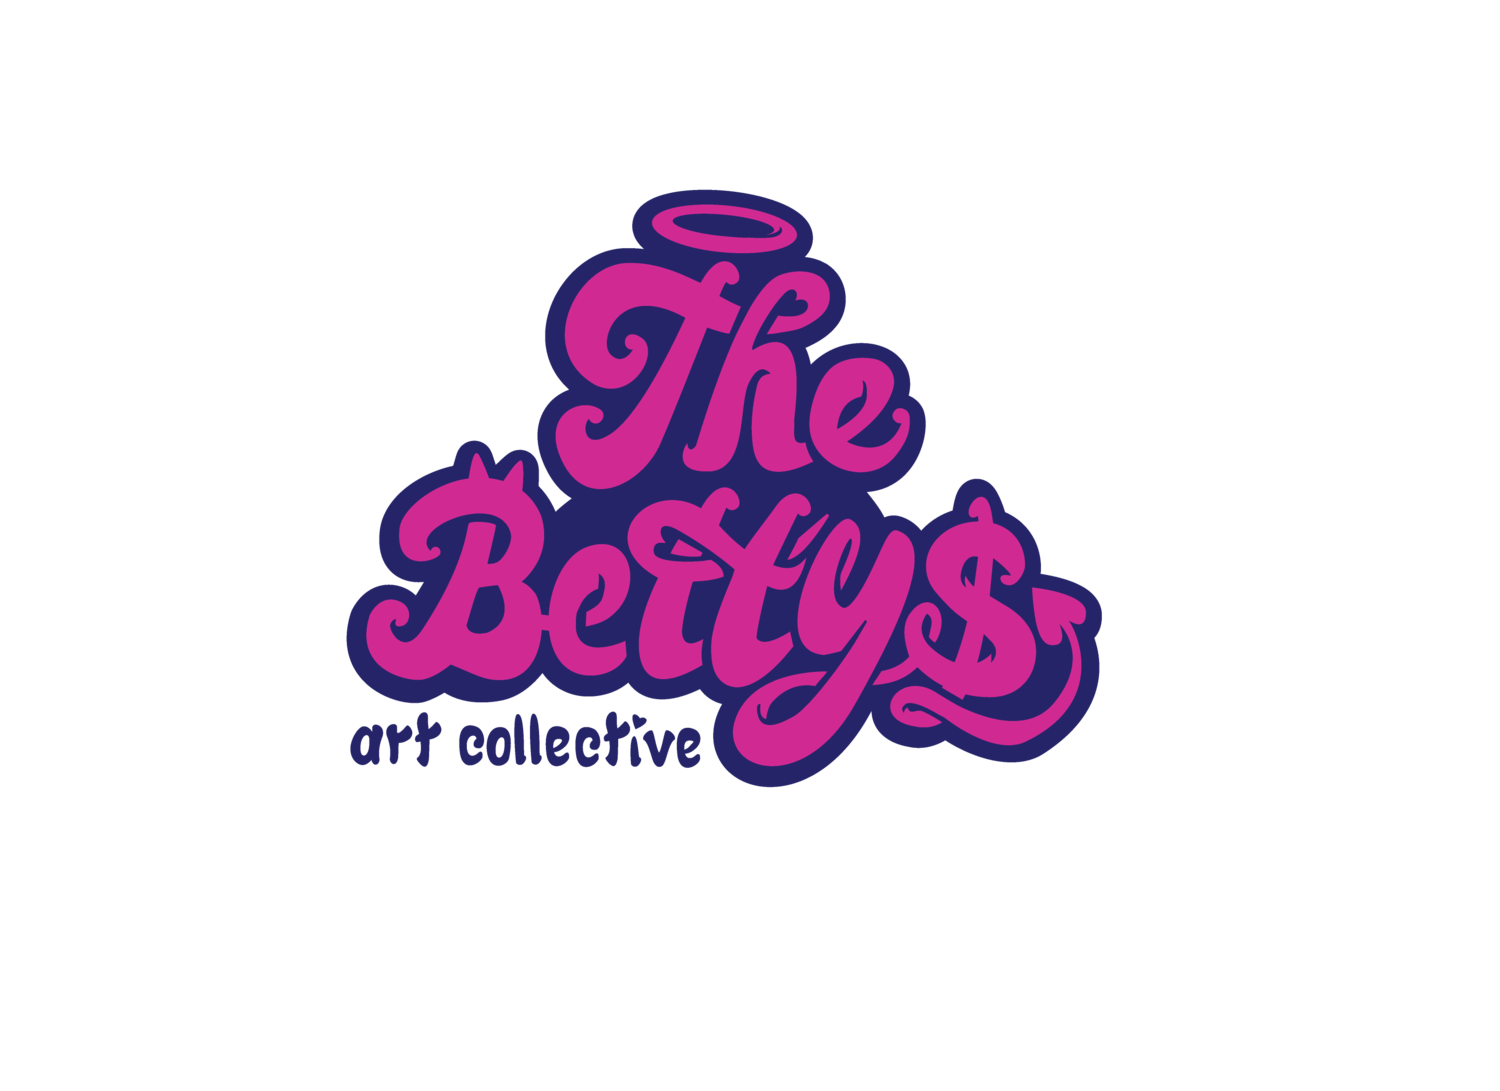 THE BETTYS